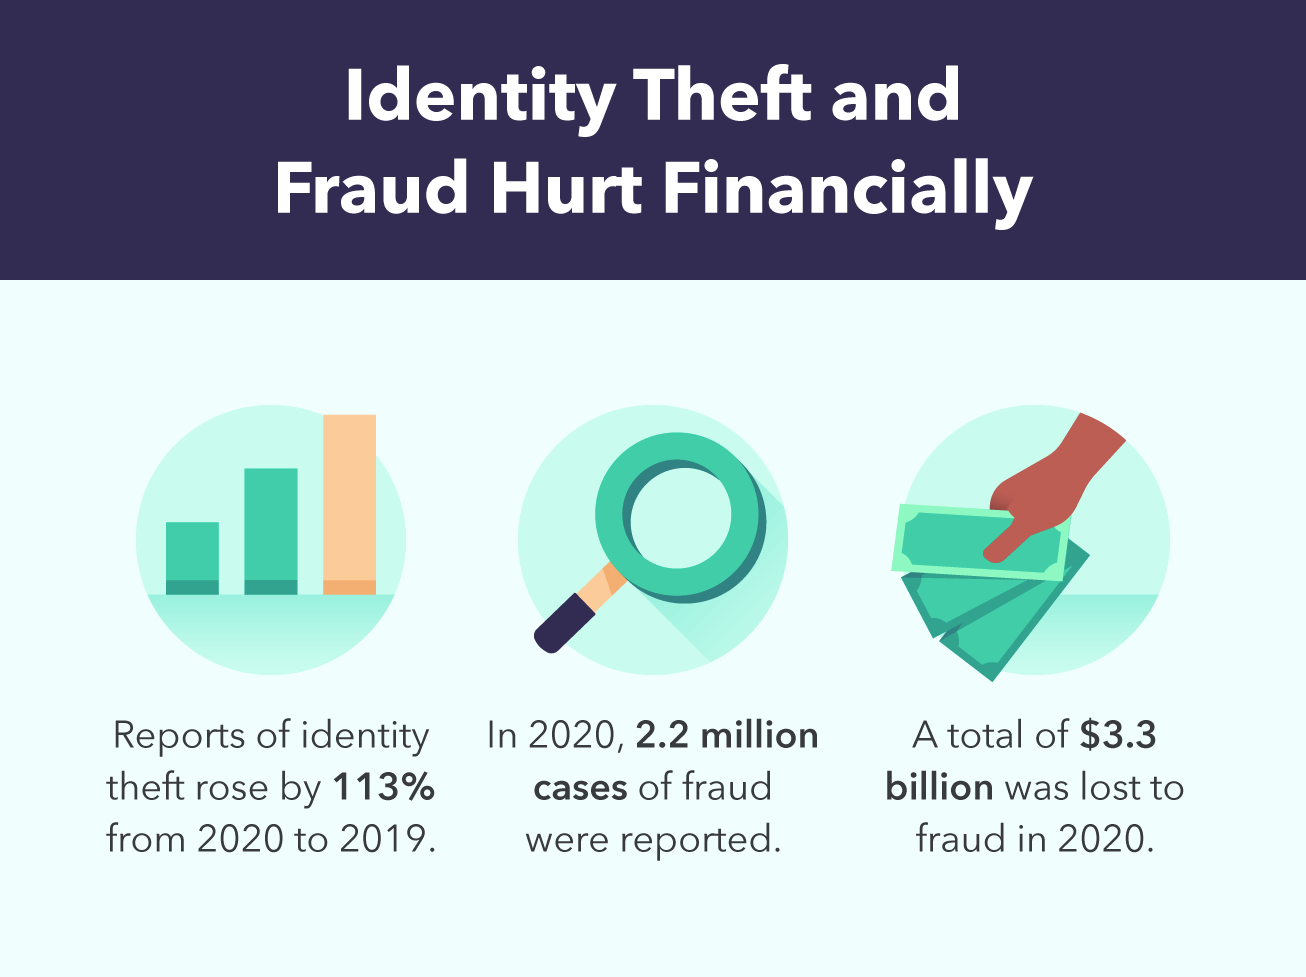 Identity theft-fraud-hurting financially